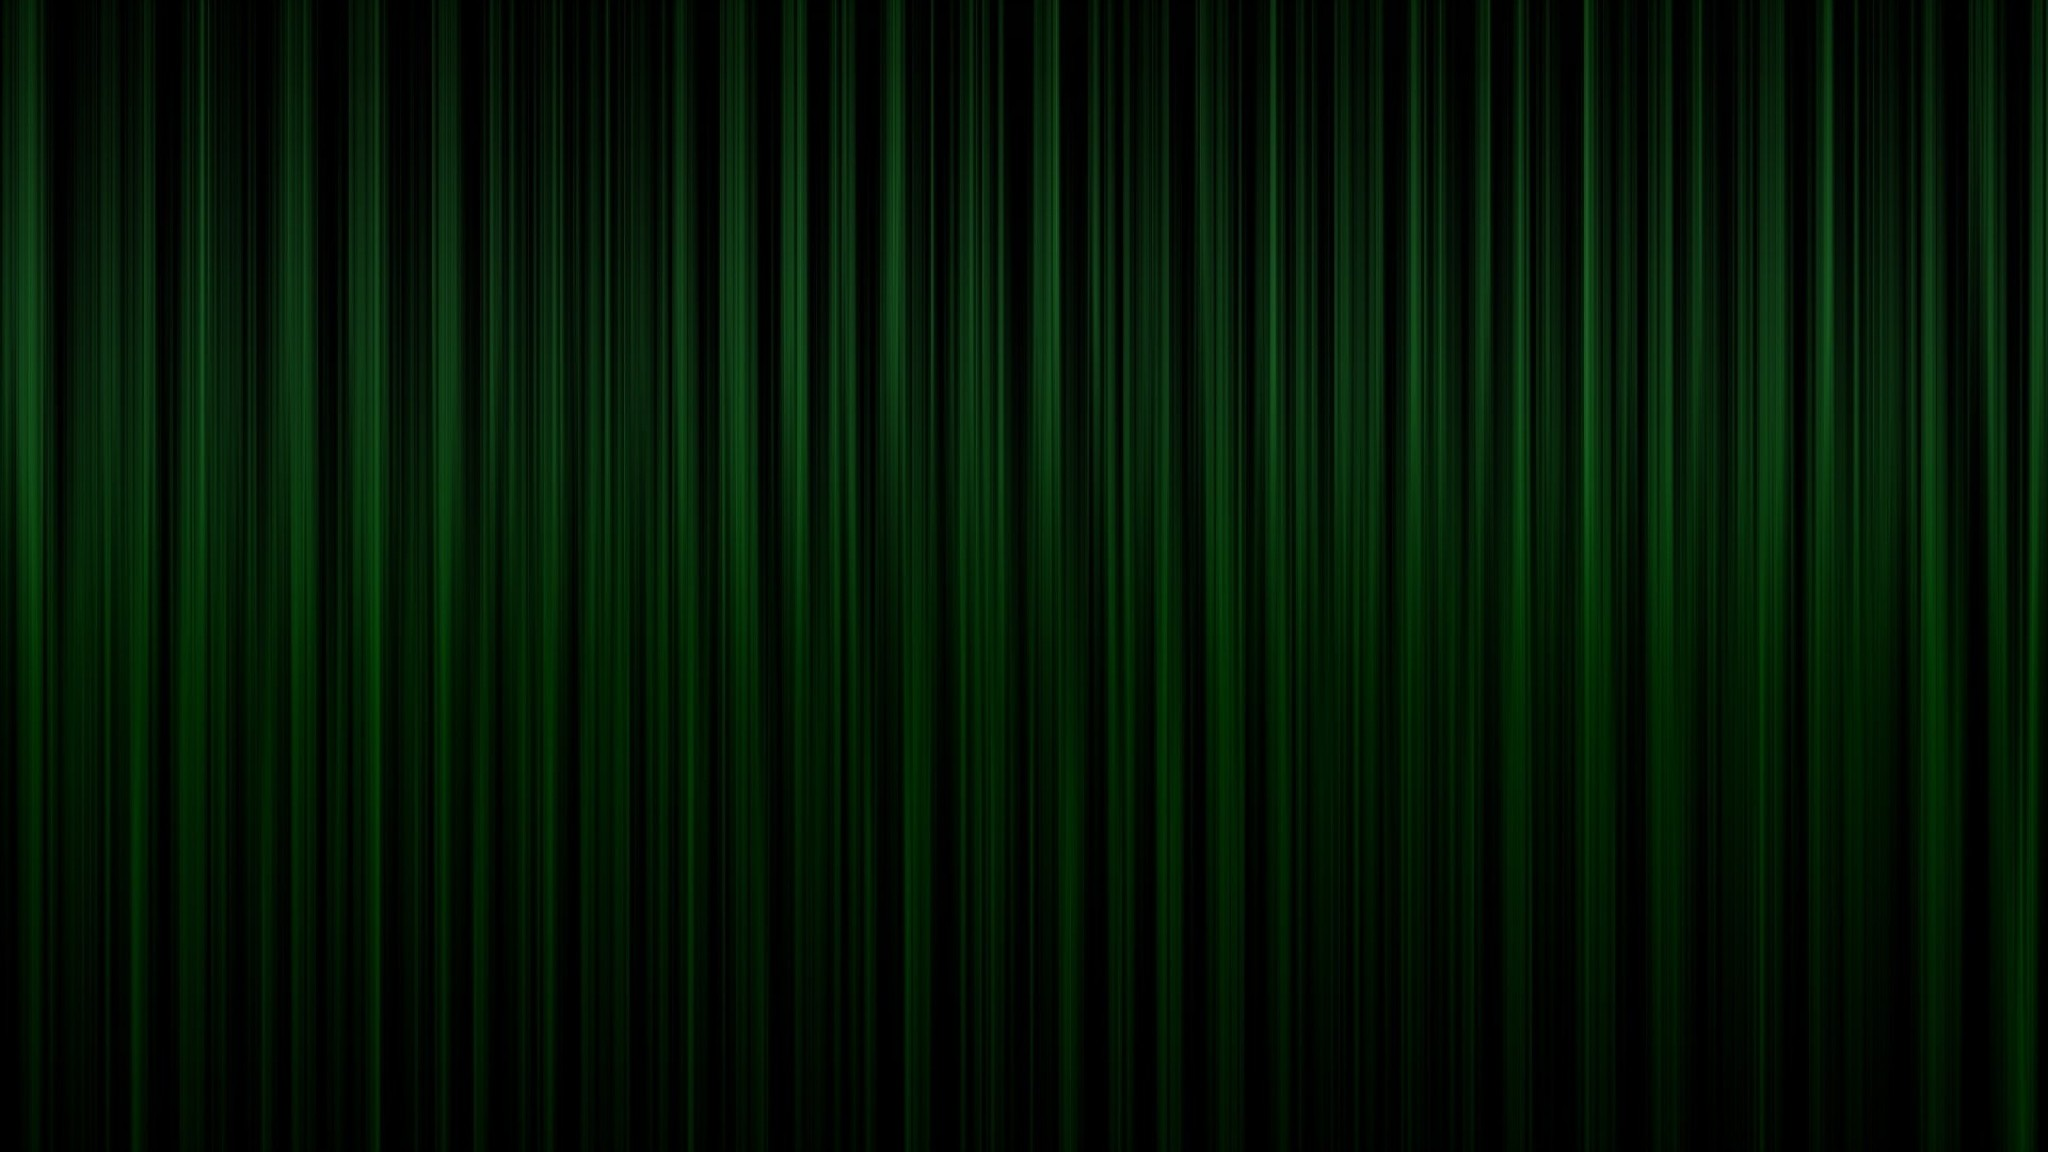 Dark Green Wallpaper Hd 59 Images